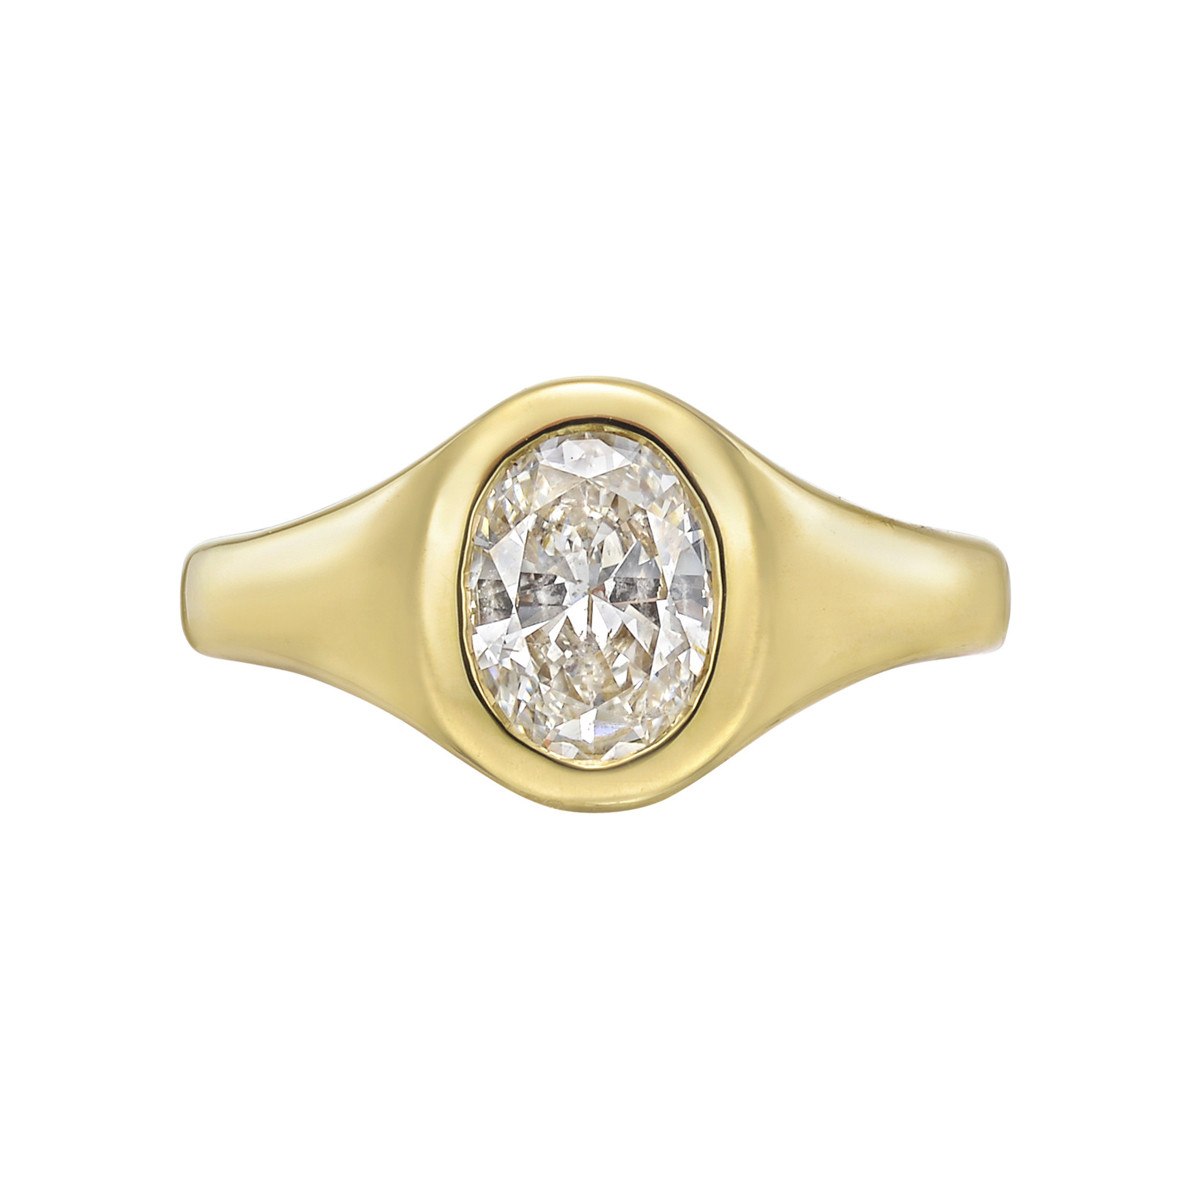 18k Yellow Gold & Oval Diamond Gypsy Ring